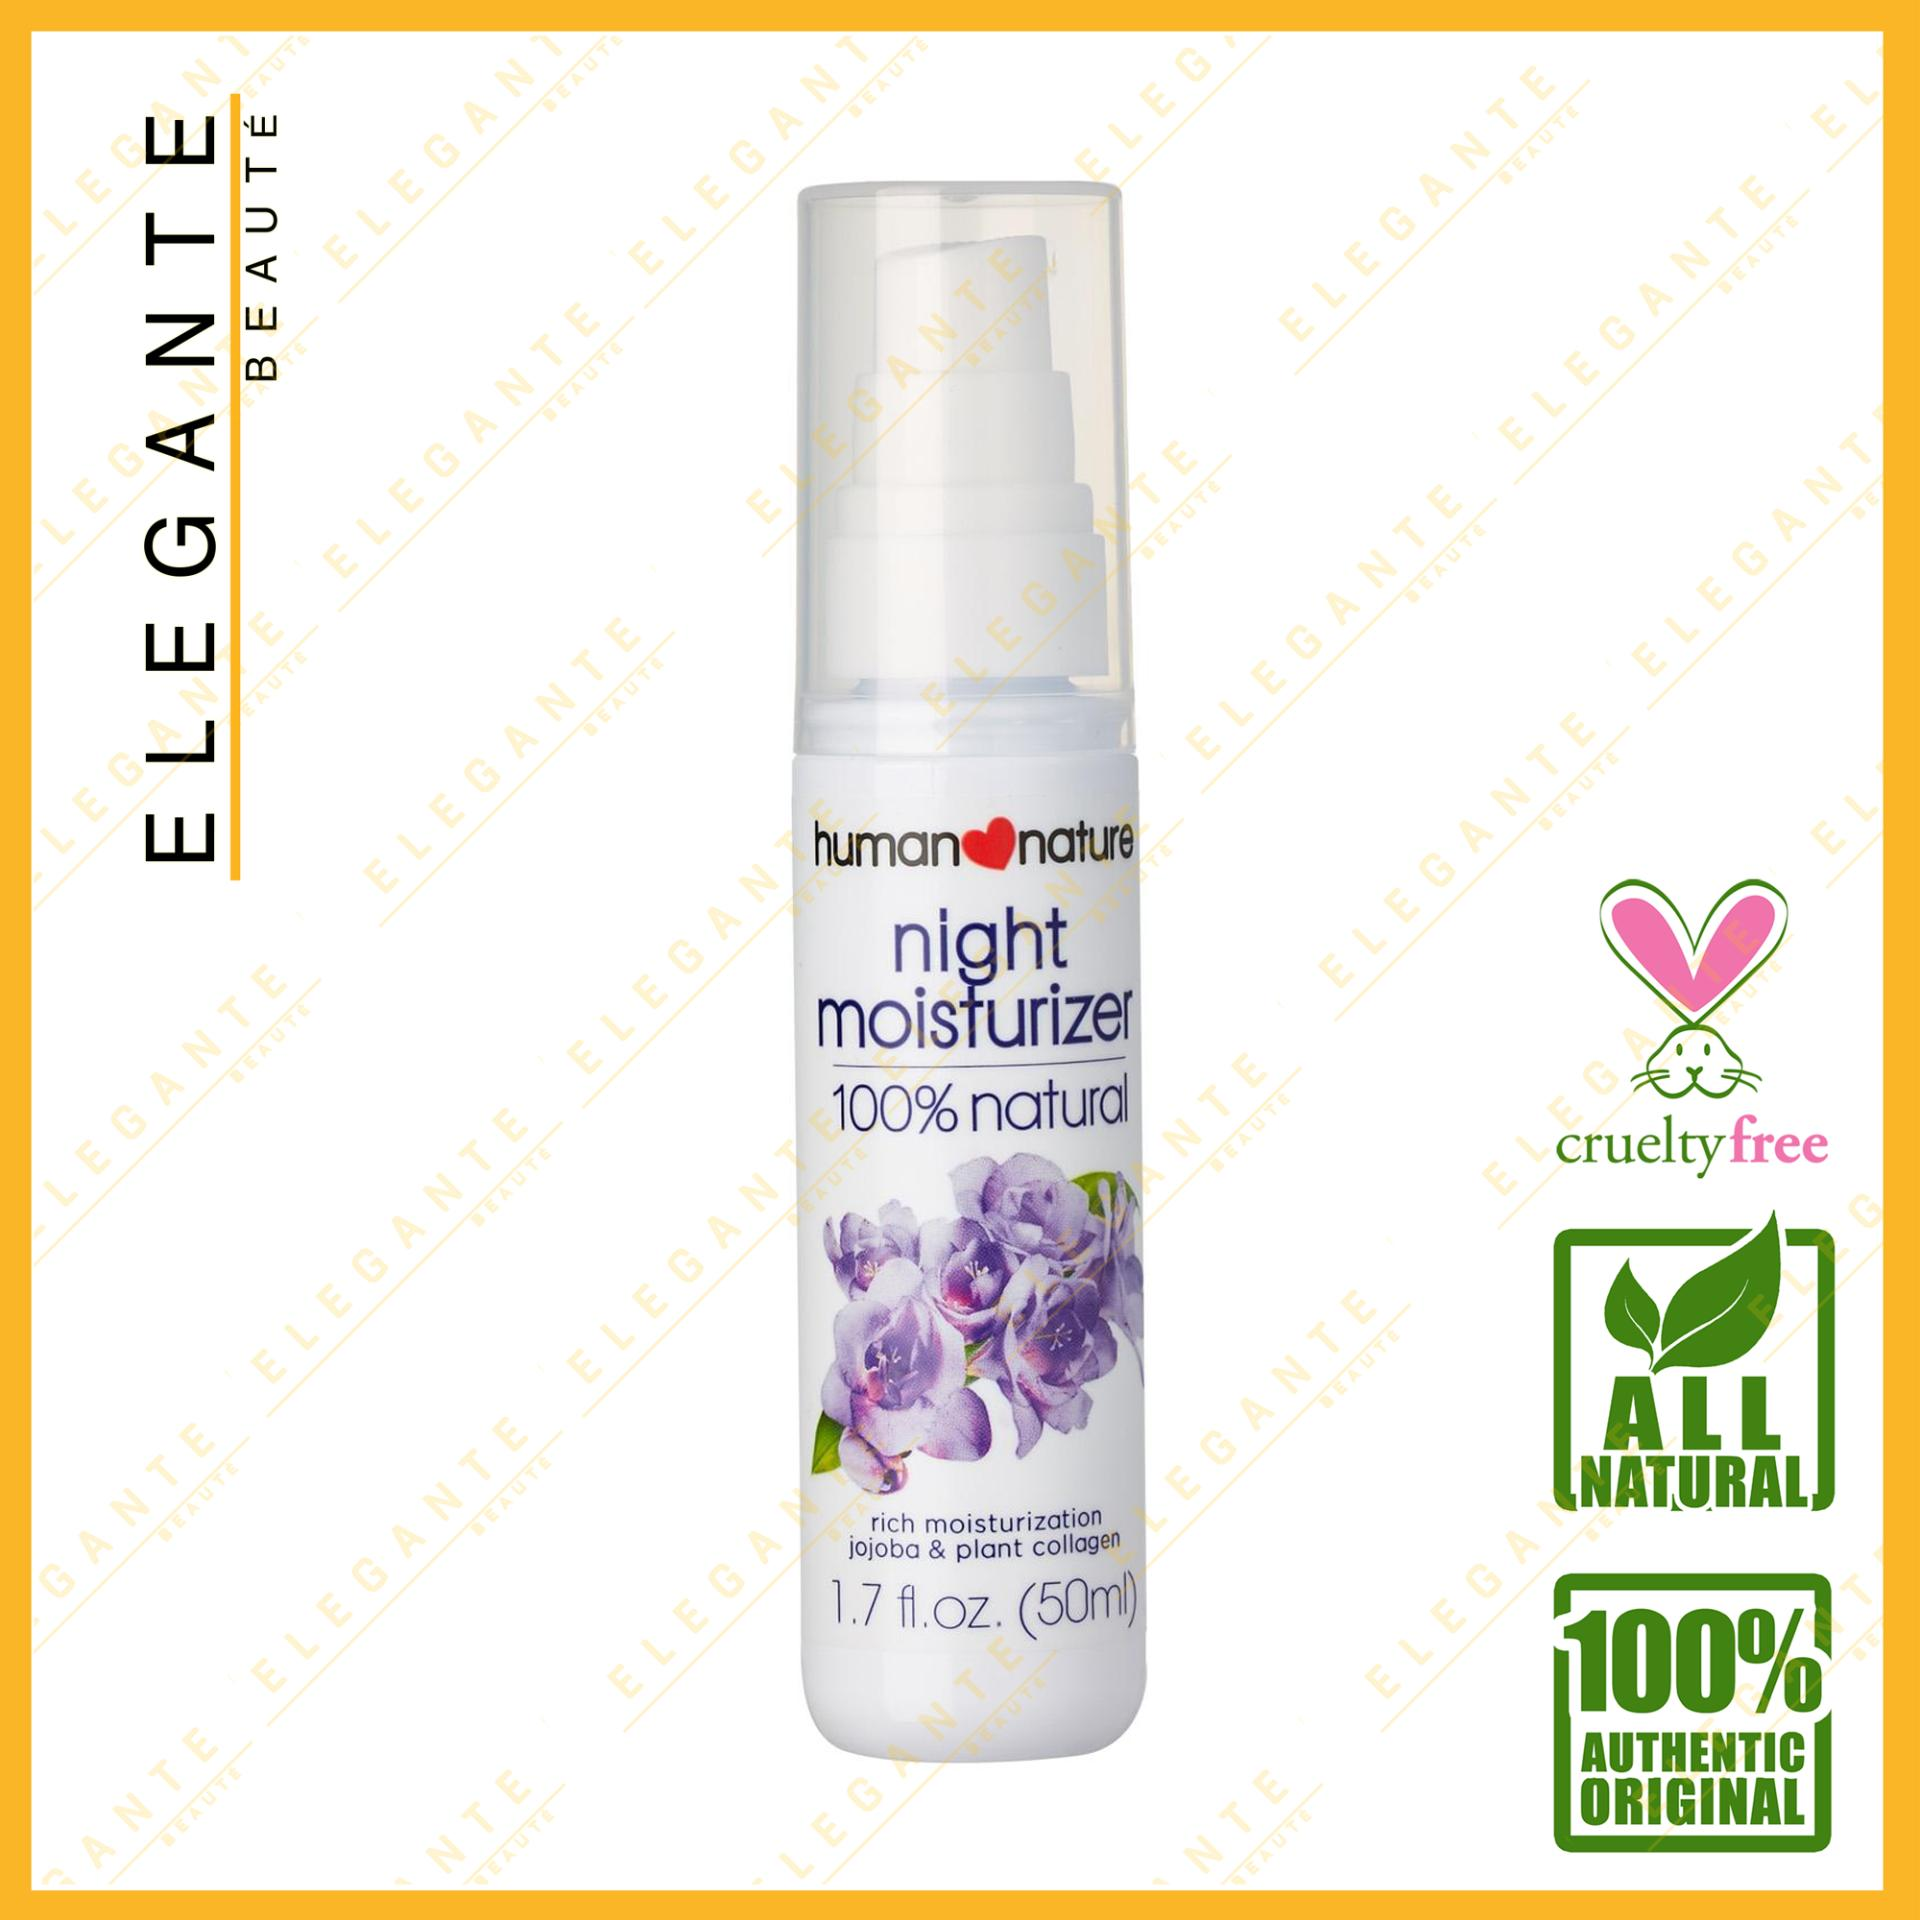 Elegante Beaute Human Nature Night Moisturizer 100% All Natural With Jojoba Extract And Plant Collagen 50ml By Elegante Beaute.